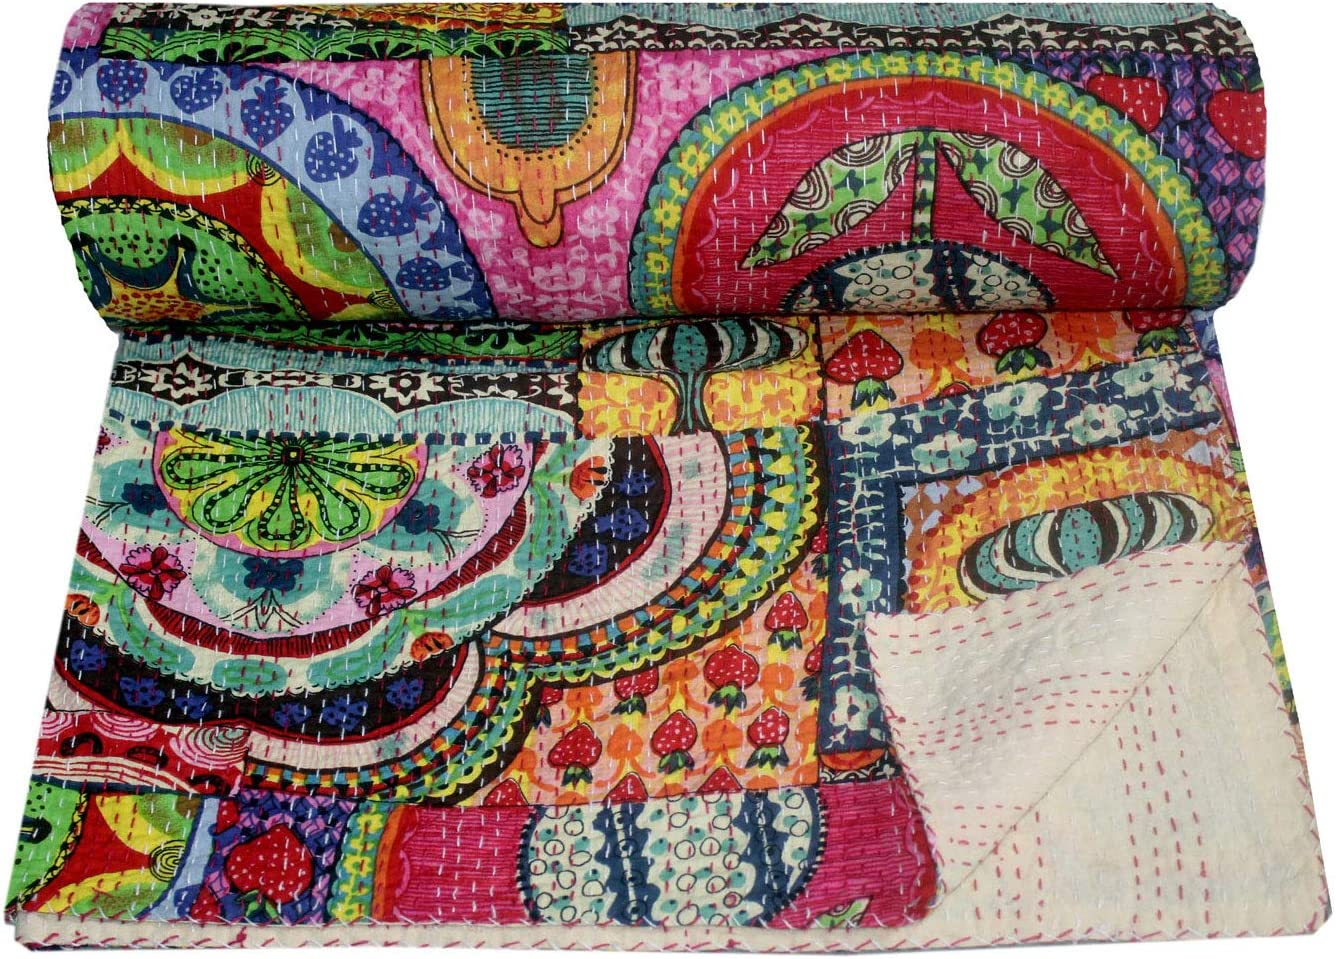 Bhawana Handicrafts Multi Colorful Kantha Quilt Queen Size Kantha Blanket Handmade Kantha Bedspread Indian Kantha Throw Traditional Kantha Bed Cover